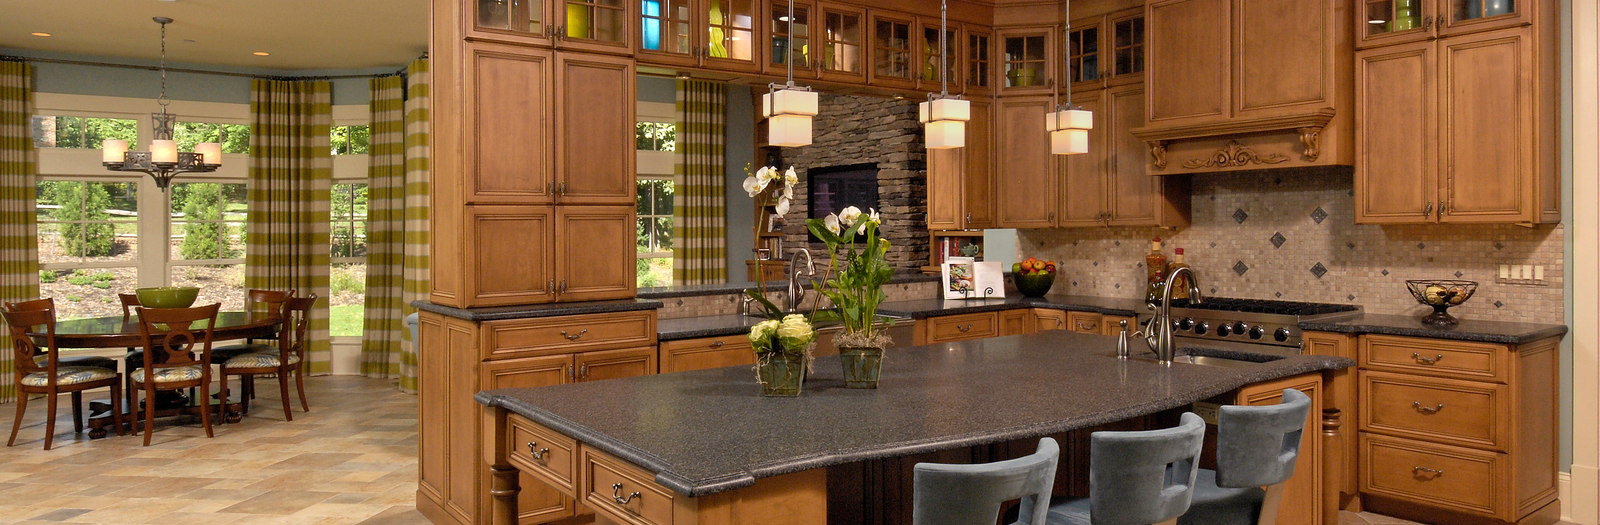 English Country Kitchen with stained wood storage cabinets